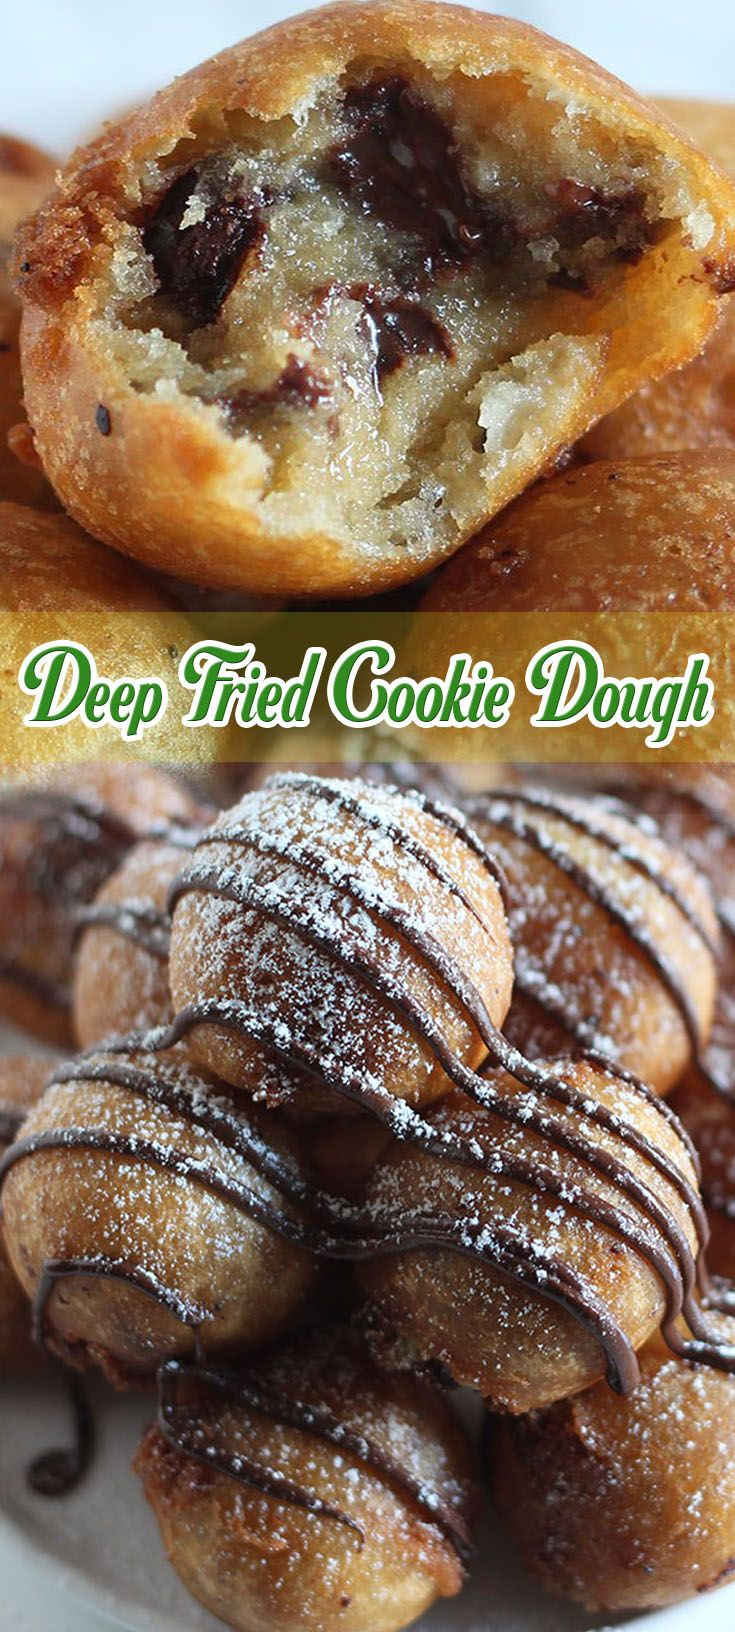 Deep Fried Cookie Dough                                                                                                                                                                                 More